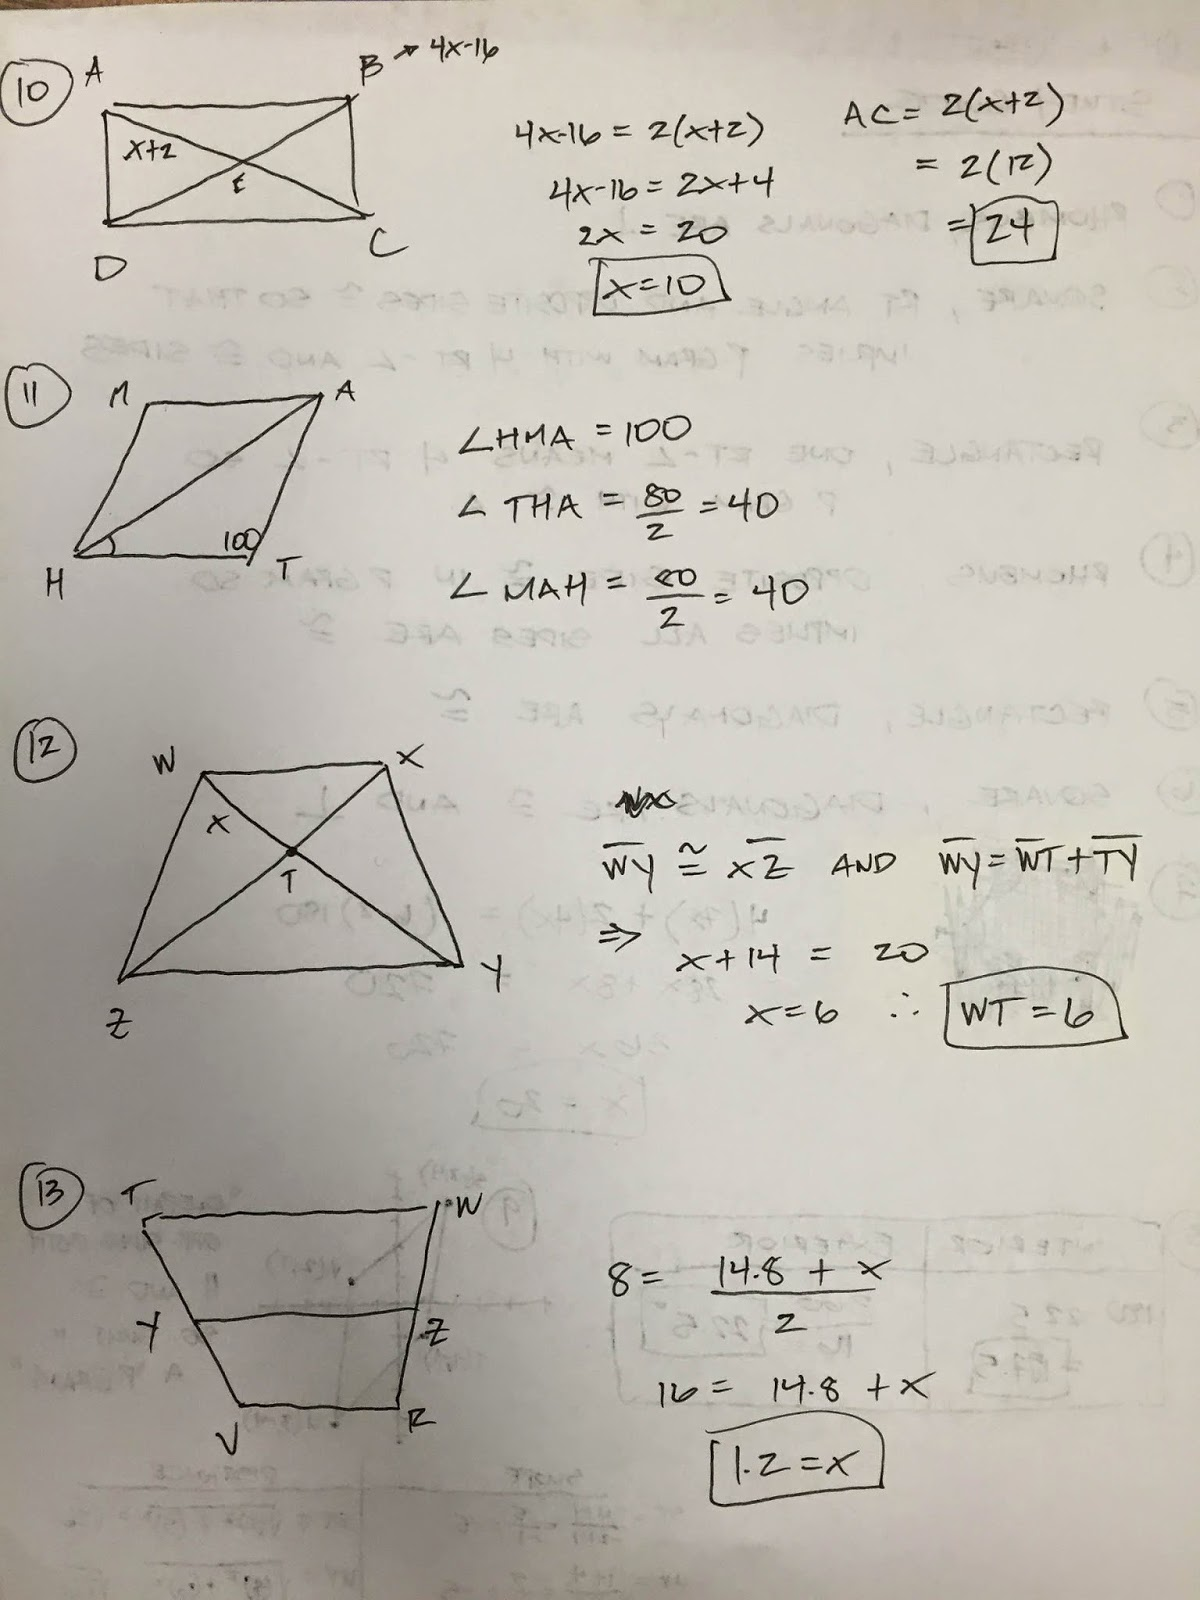 honors geometry vintage high school chapter 6 quadrilaterals rh hgeometryvhs blogspot com geometry chapter 6 study guide answers glencoe geometry chapter 6 study guide answers